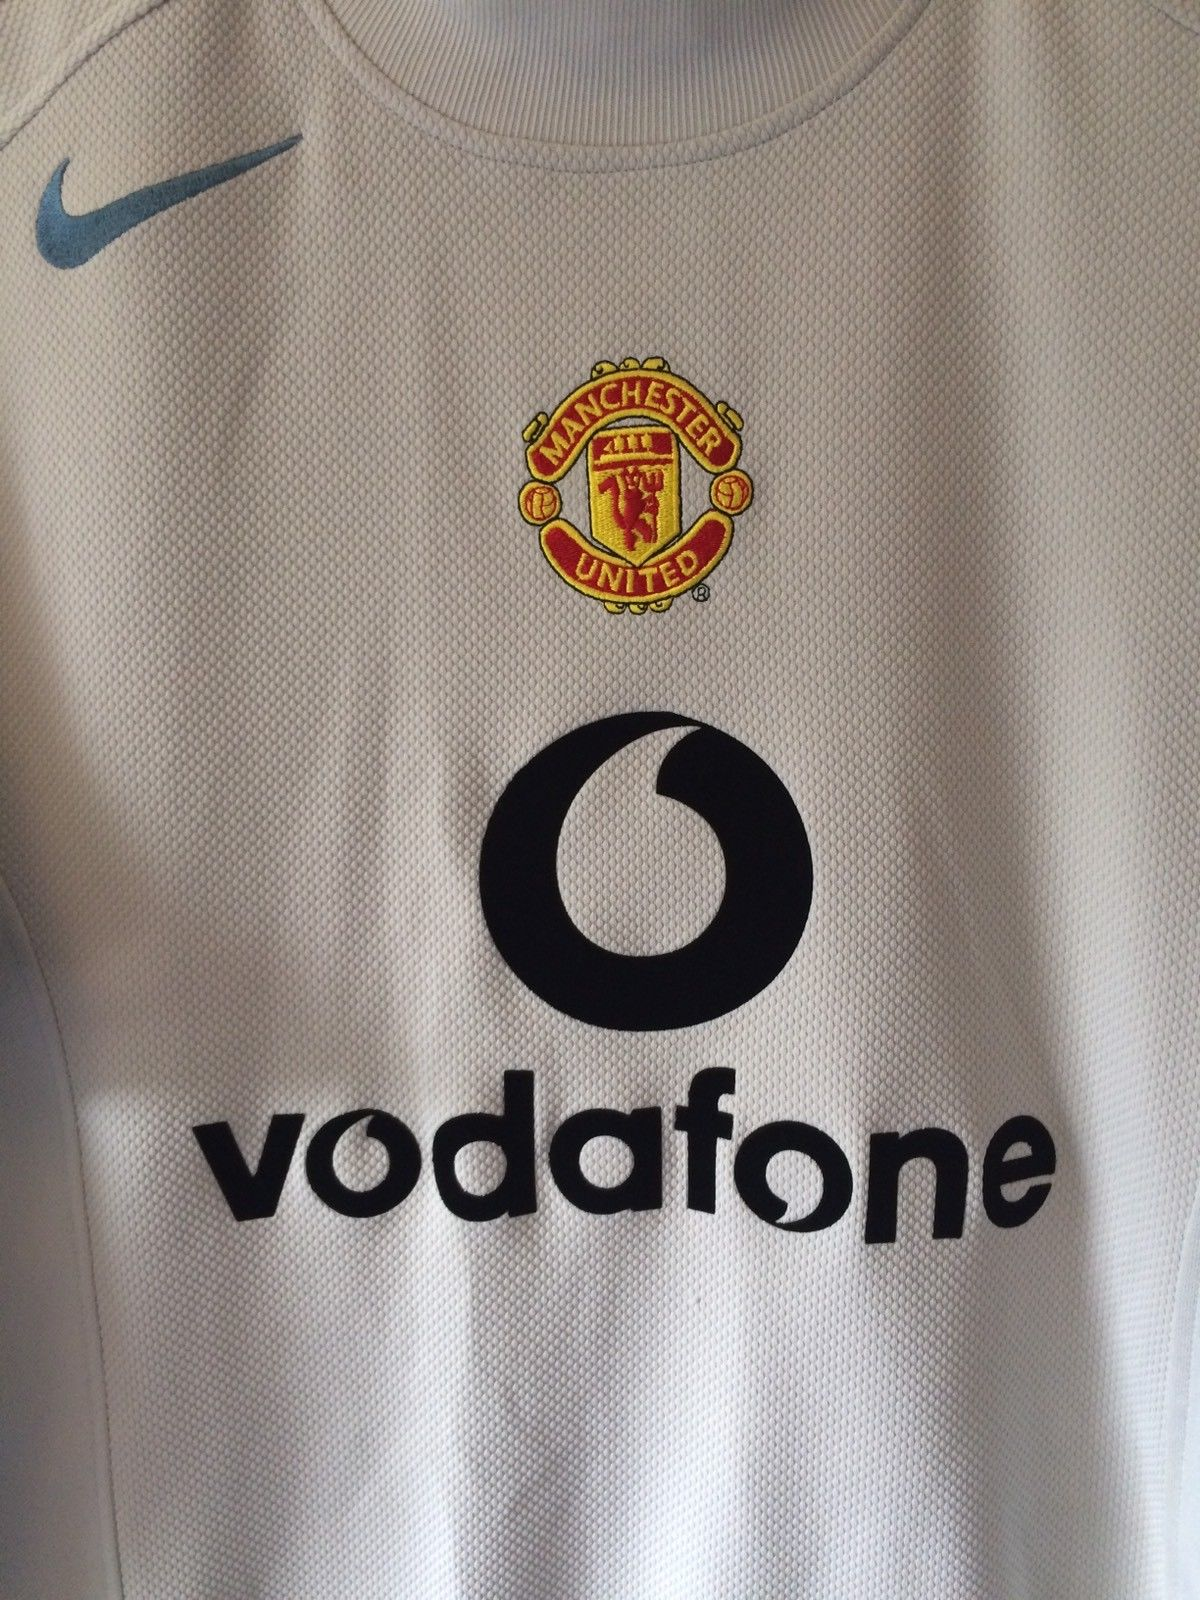 e31cc46d9 Manchester United Tim Howard 1 GK Football Shirt 2004 05 Adults Large Nike.  🔍. instock